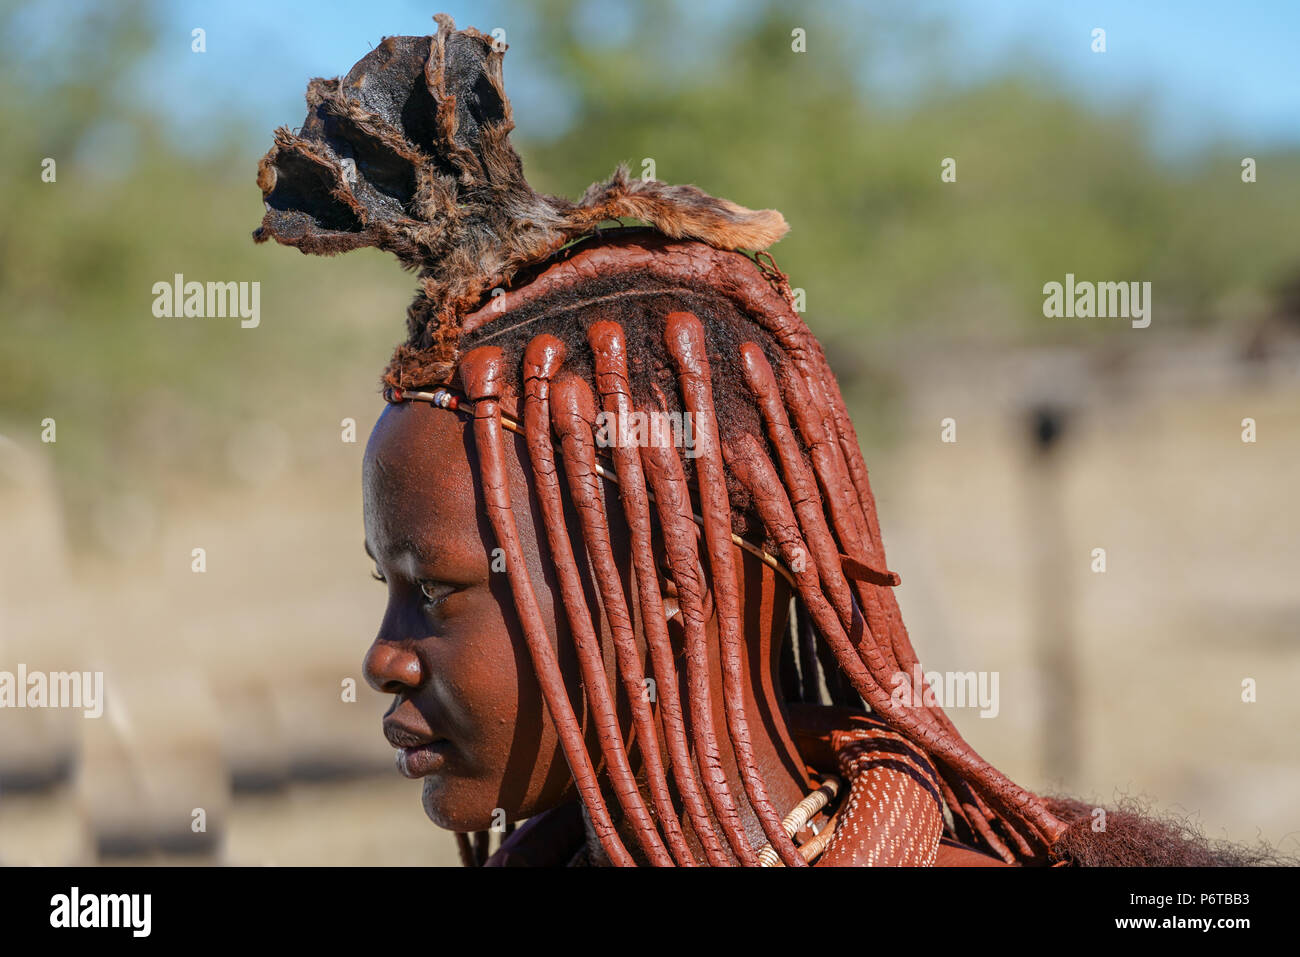 Hair Style Village High Resolution Stock Photography And Images Alamy